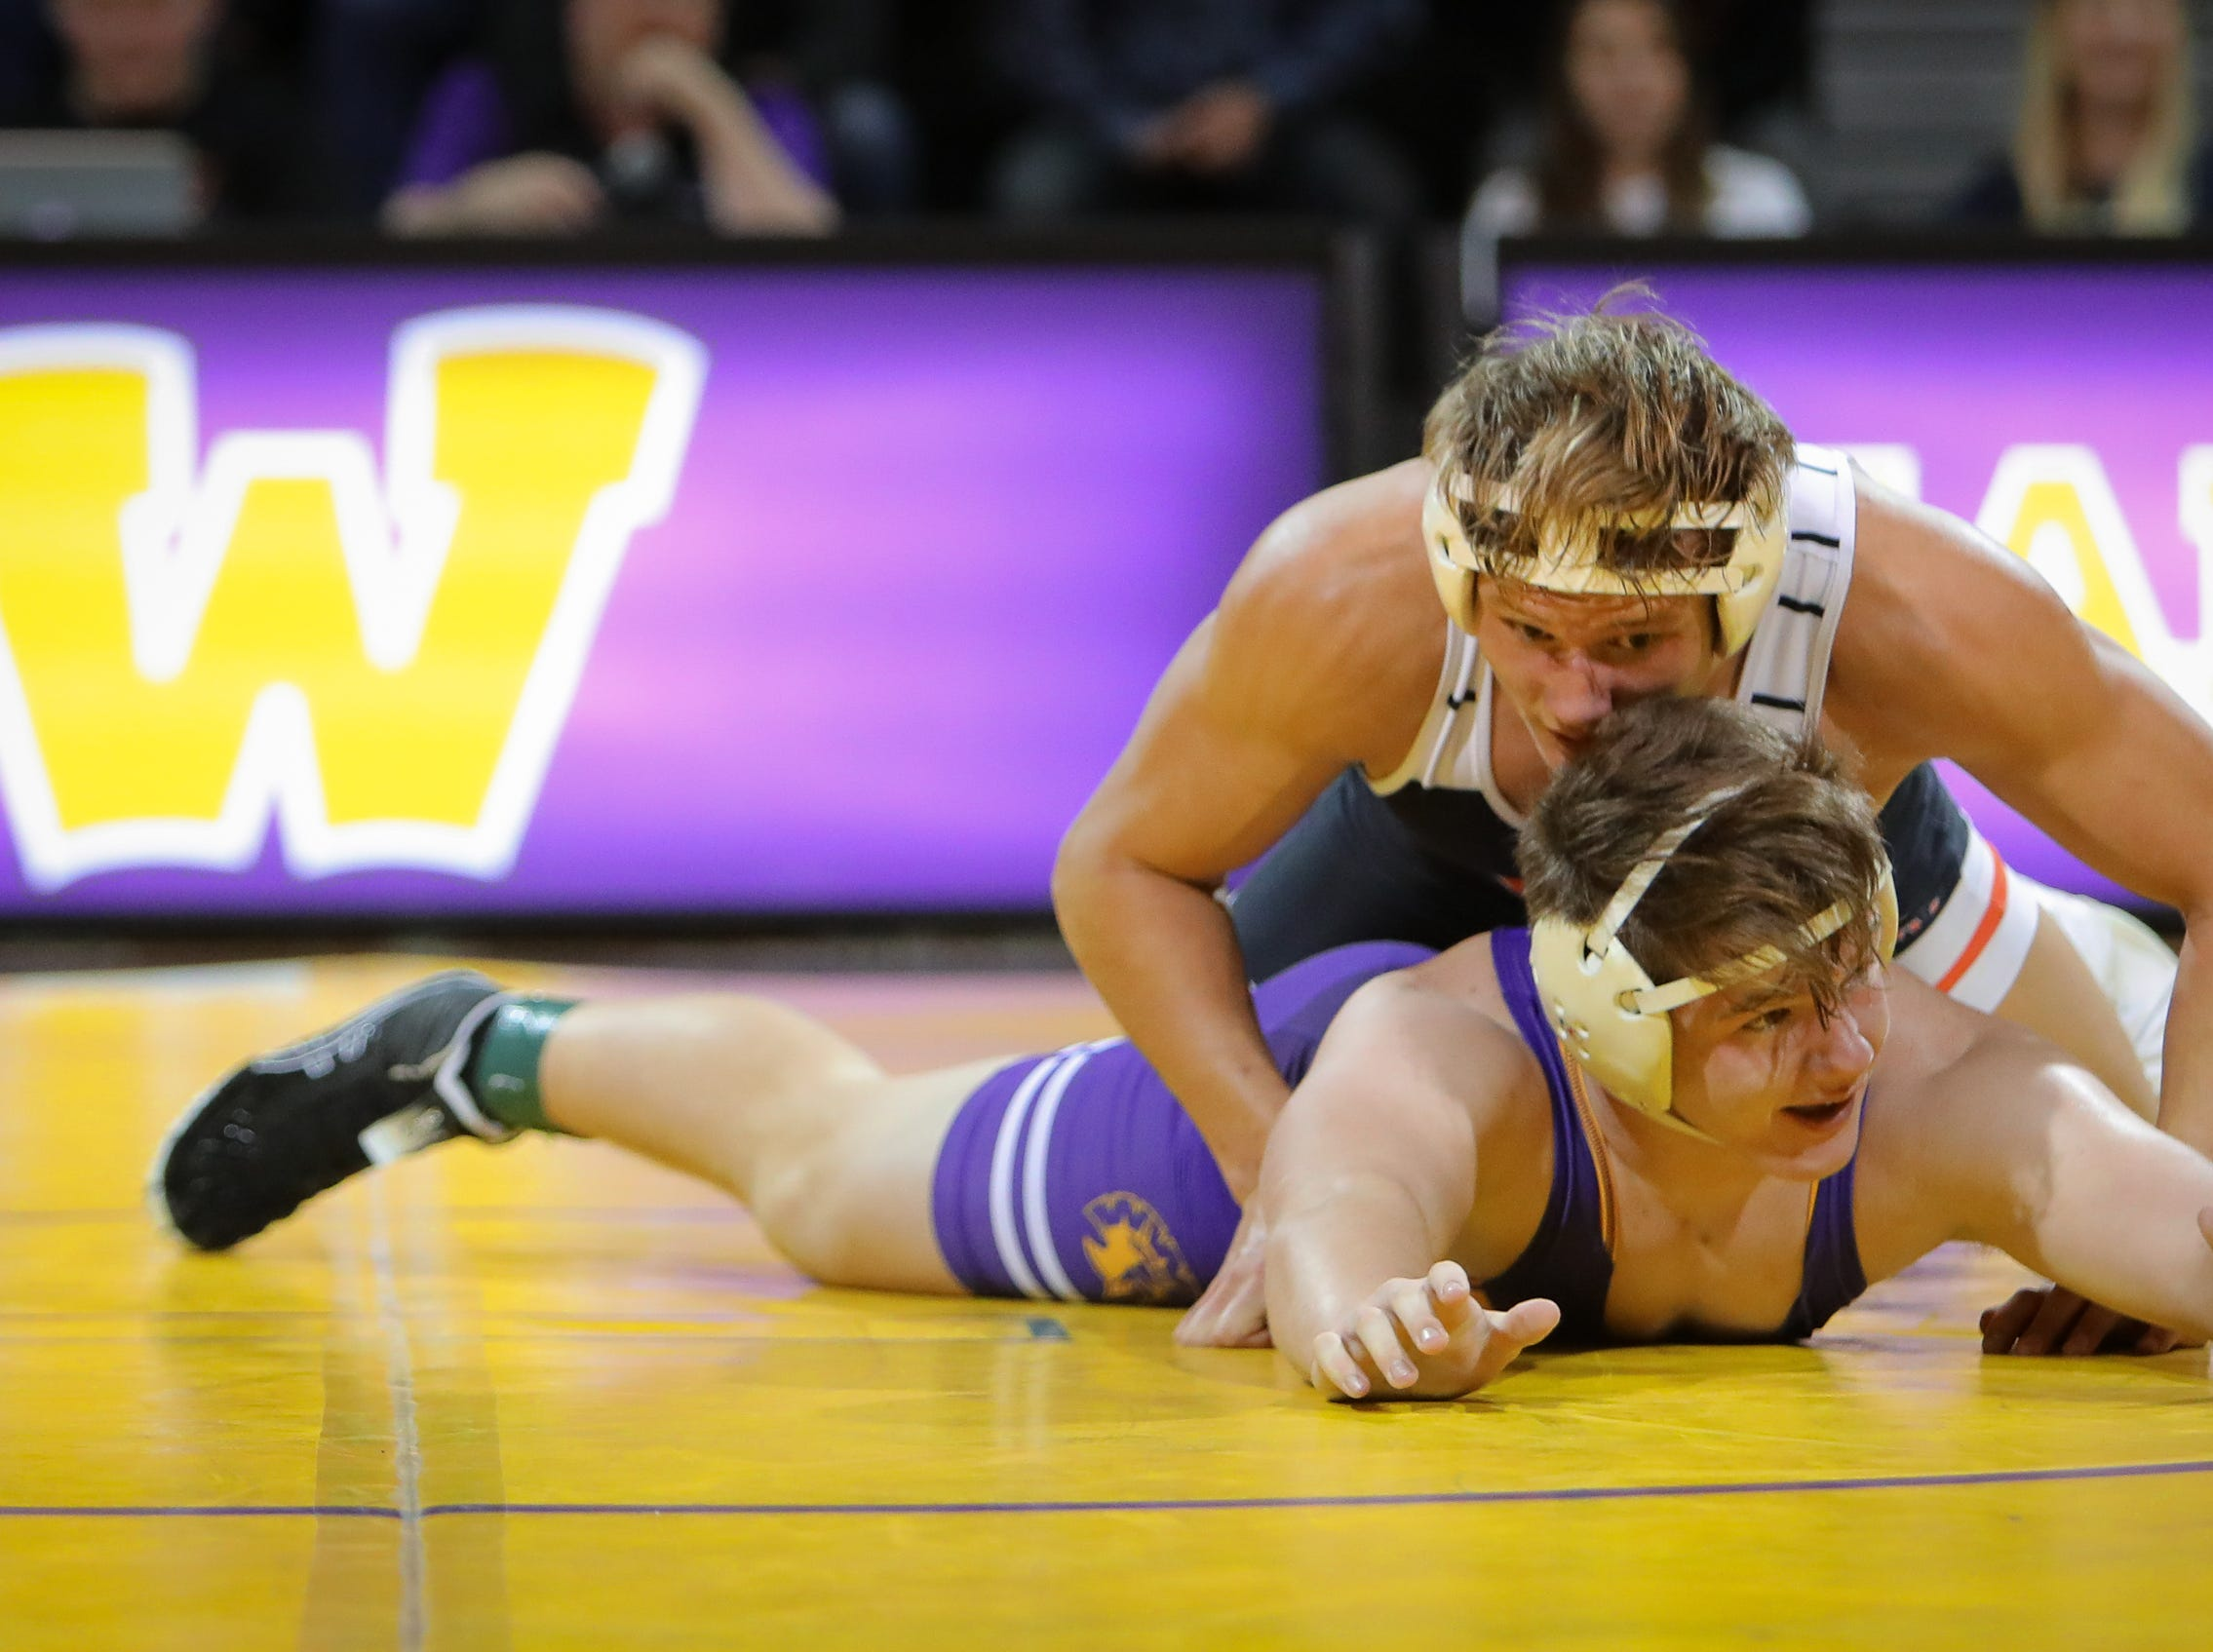 Valley junior Blake Underwood holds down Waukee freshman Griffin Gammell airborne in the 182-pound weight class during a high school wrestling meet between the Valley Tigers and the Waukee Warriors at Waukee High School on Dec. 20, 2018 in Waukee, Iowa.